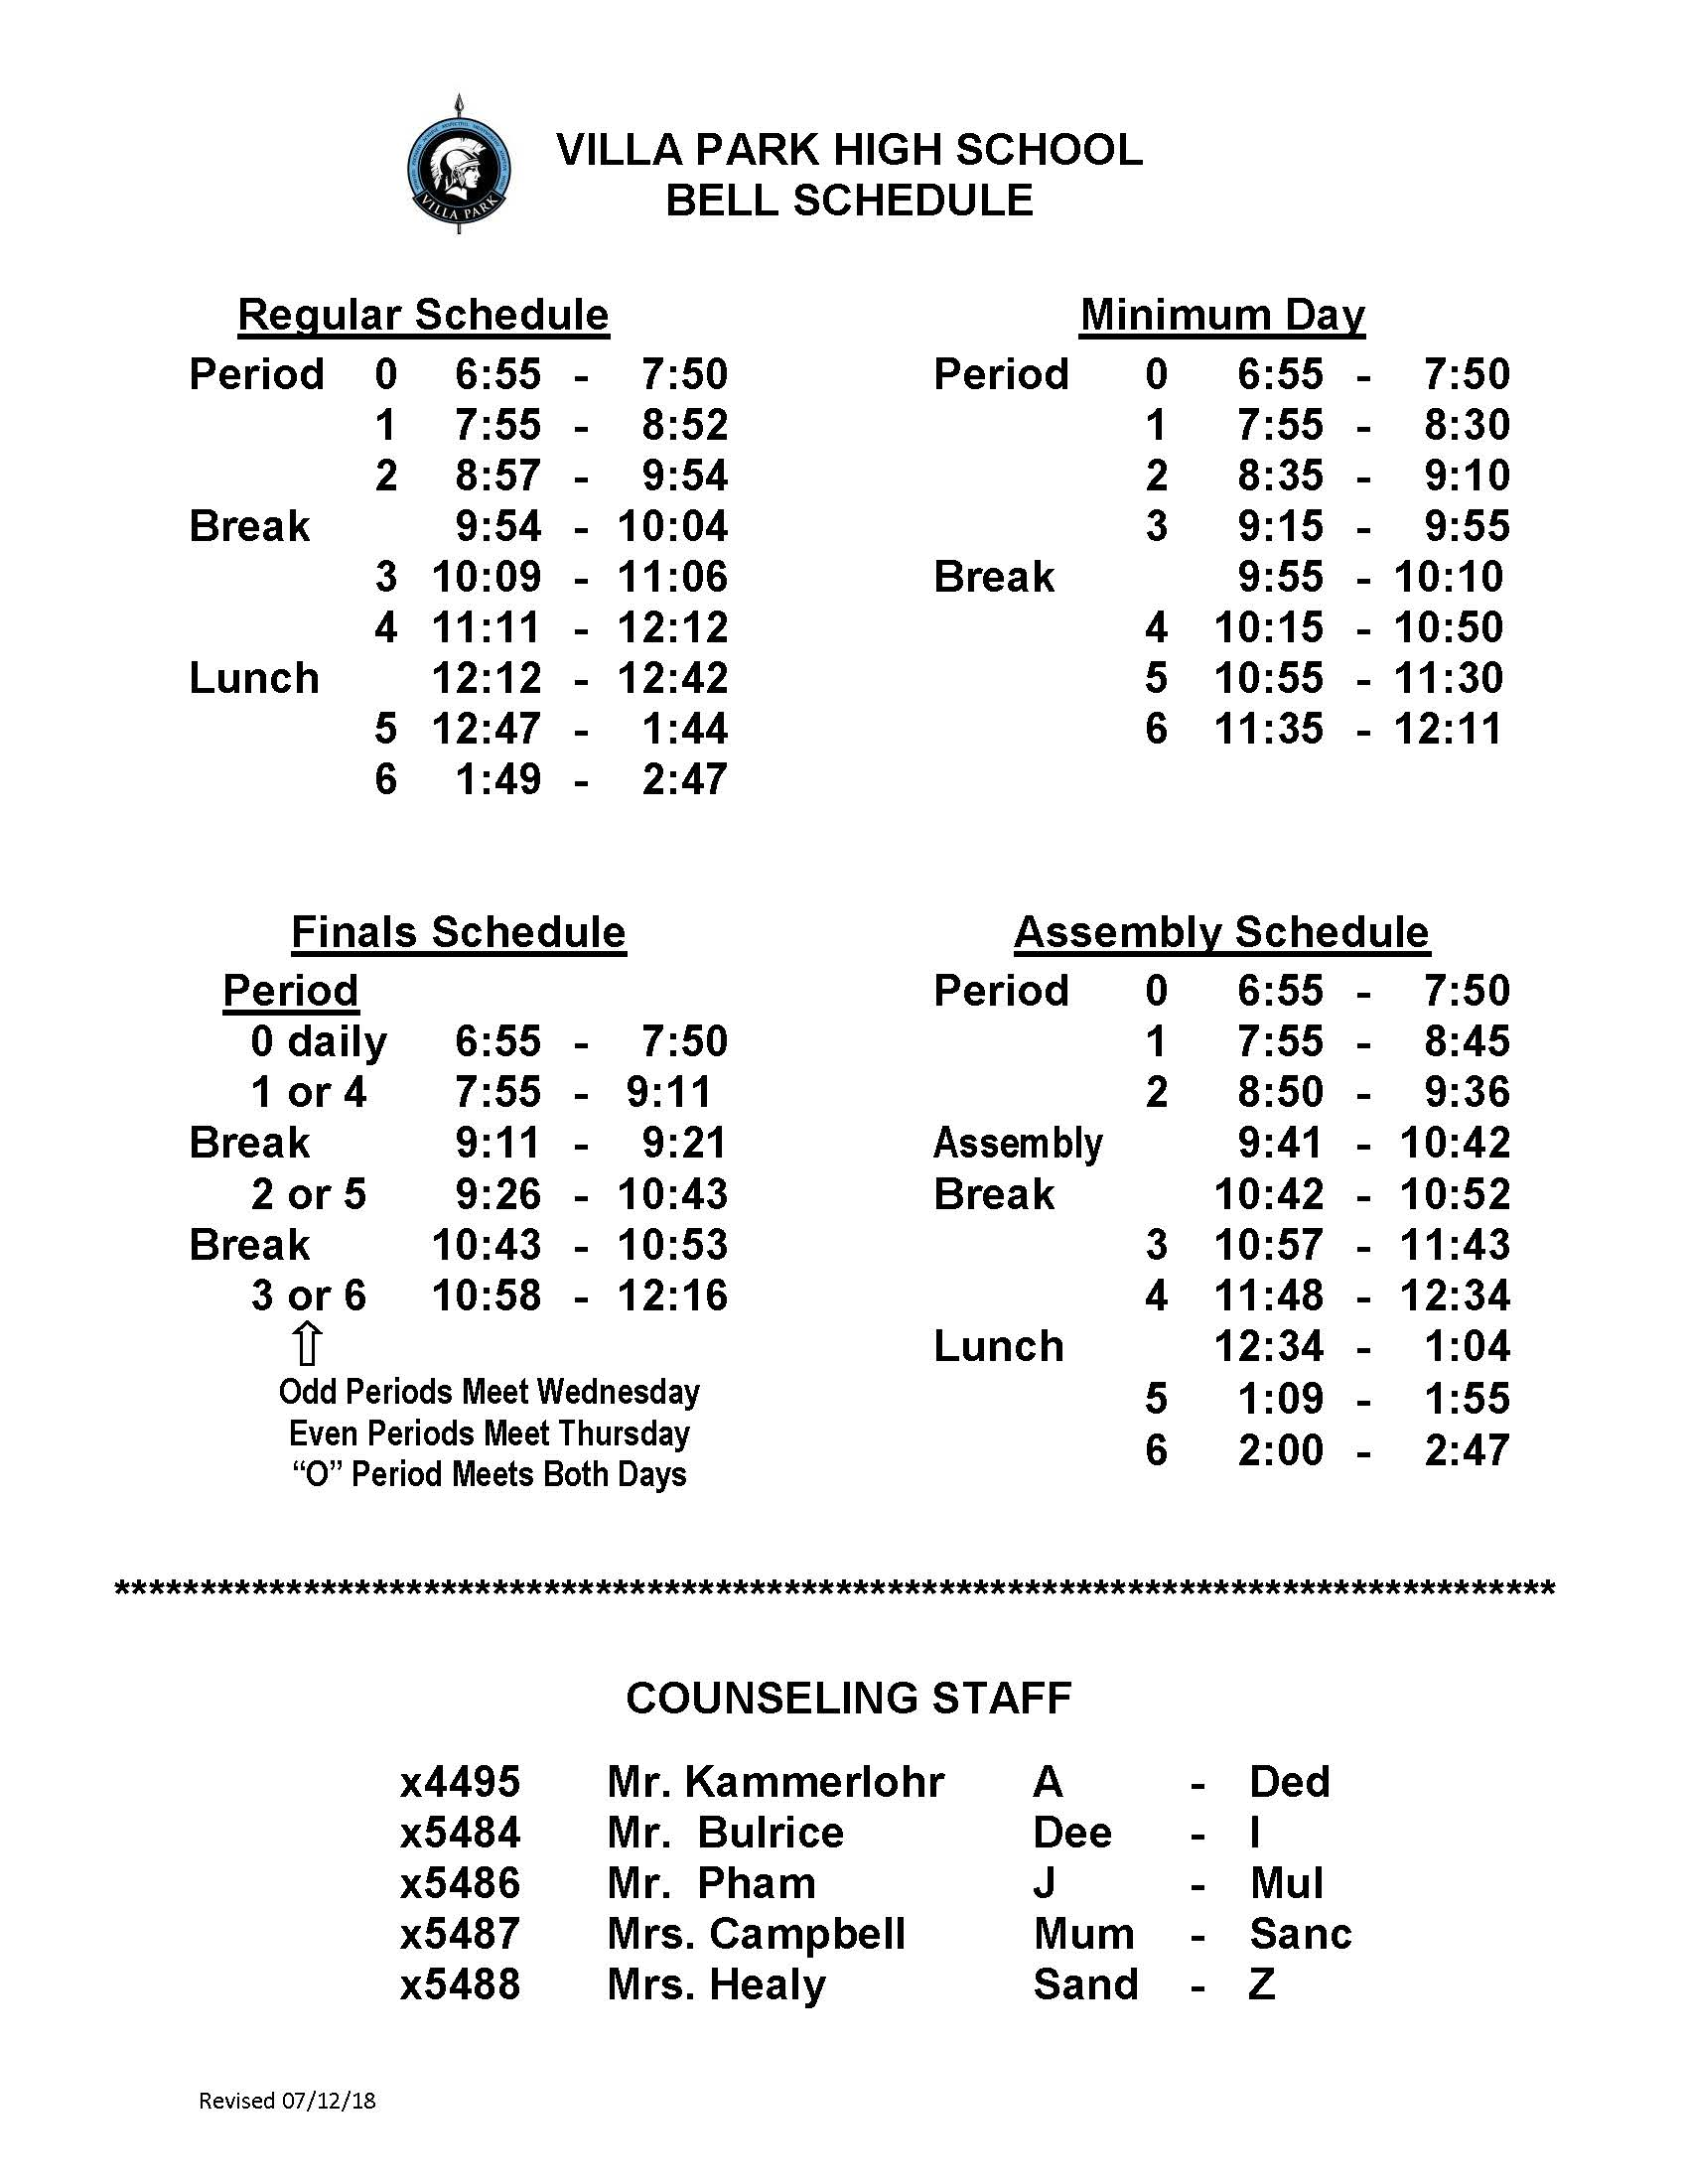 bell schedule villa park high school